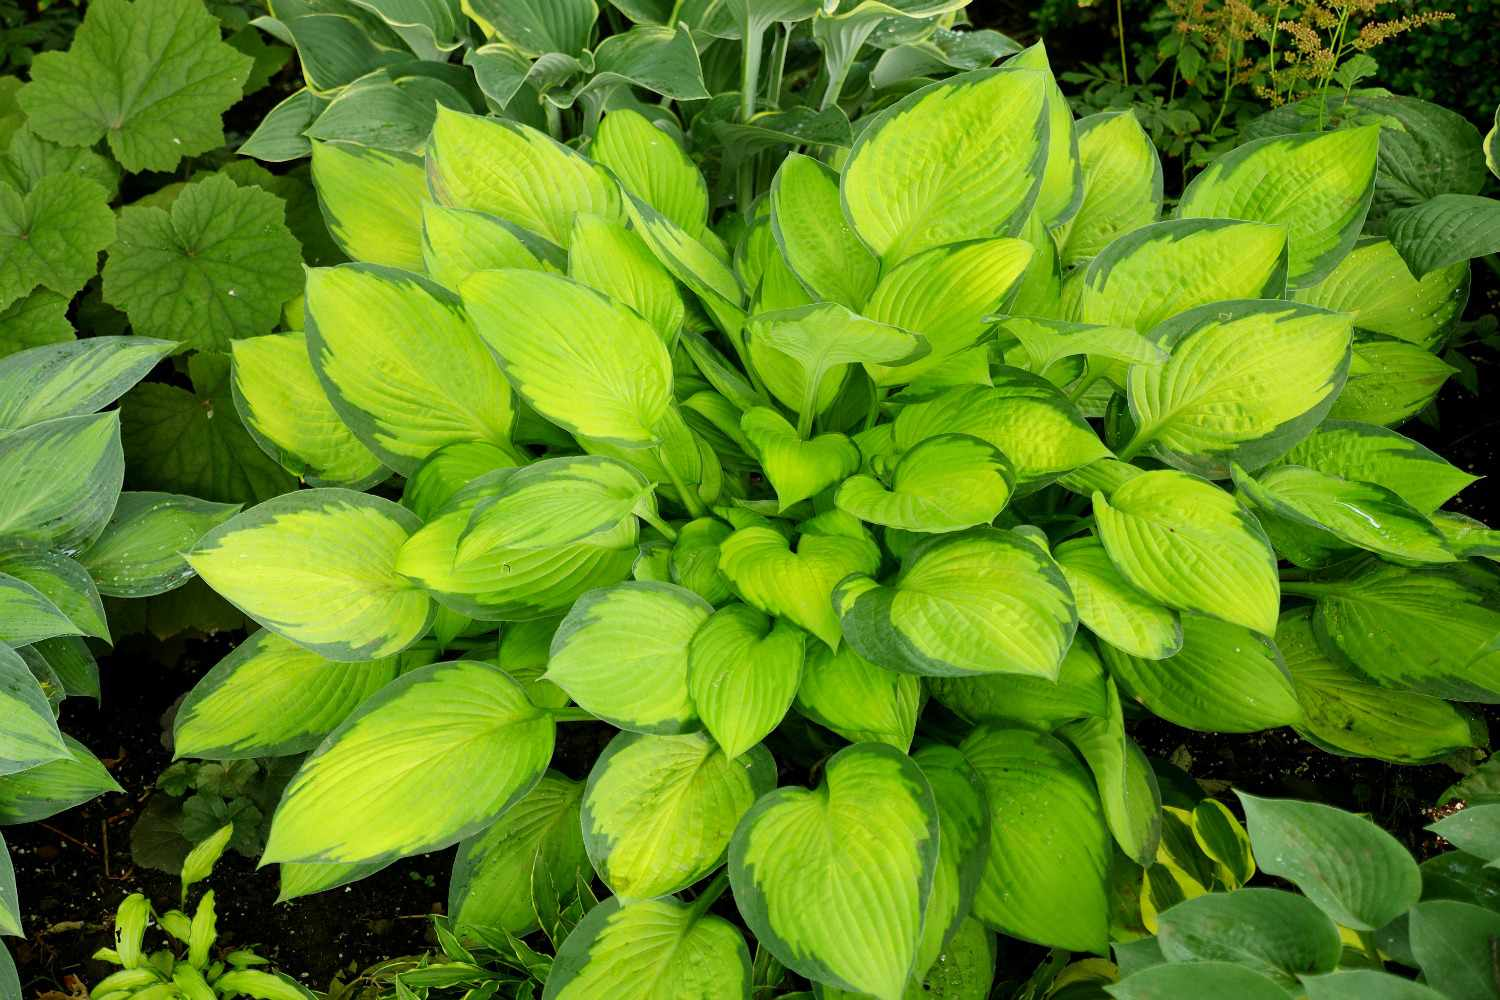 Plantain lily growing in garden.